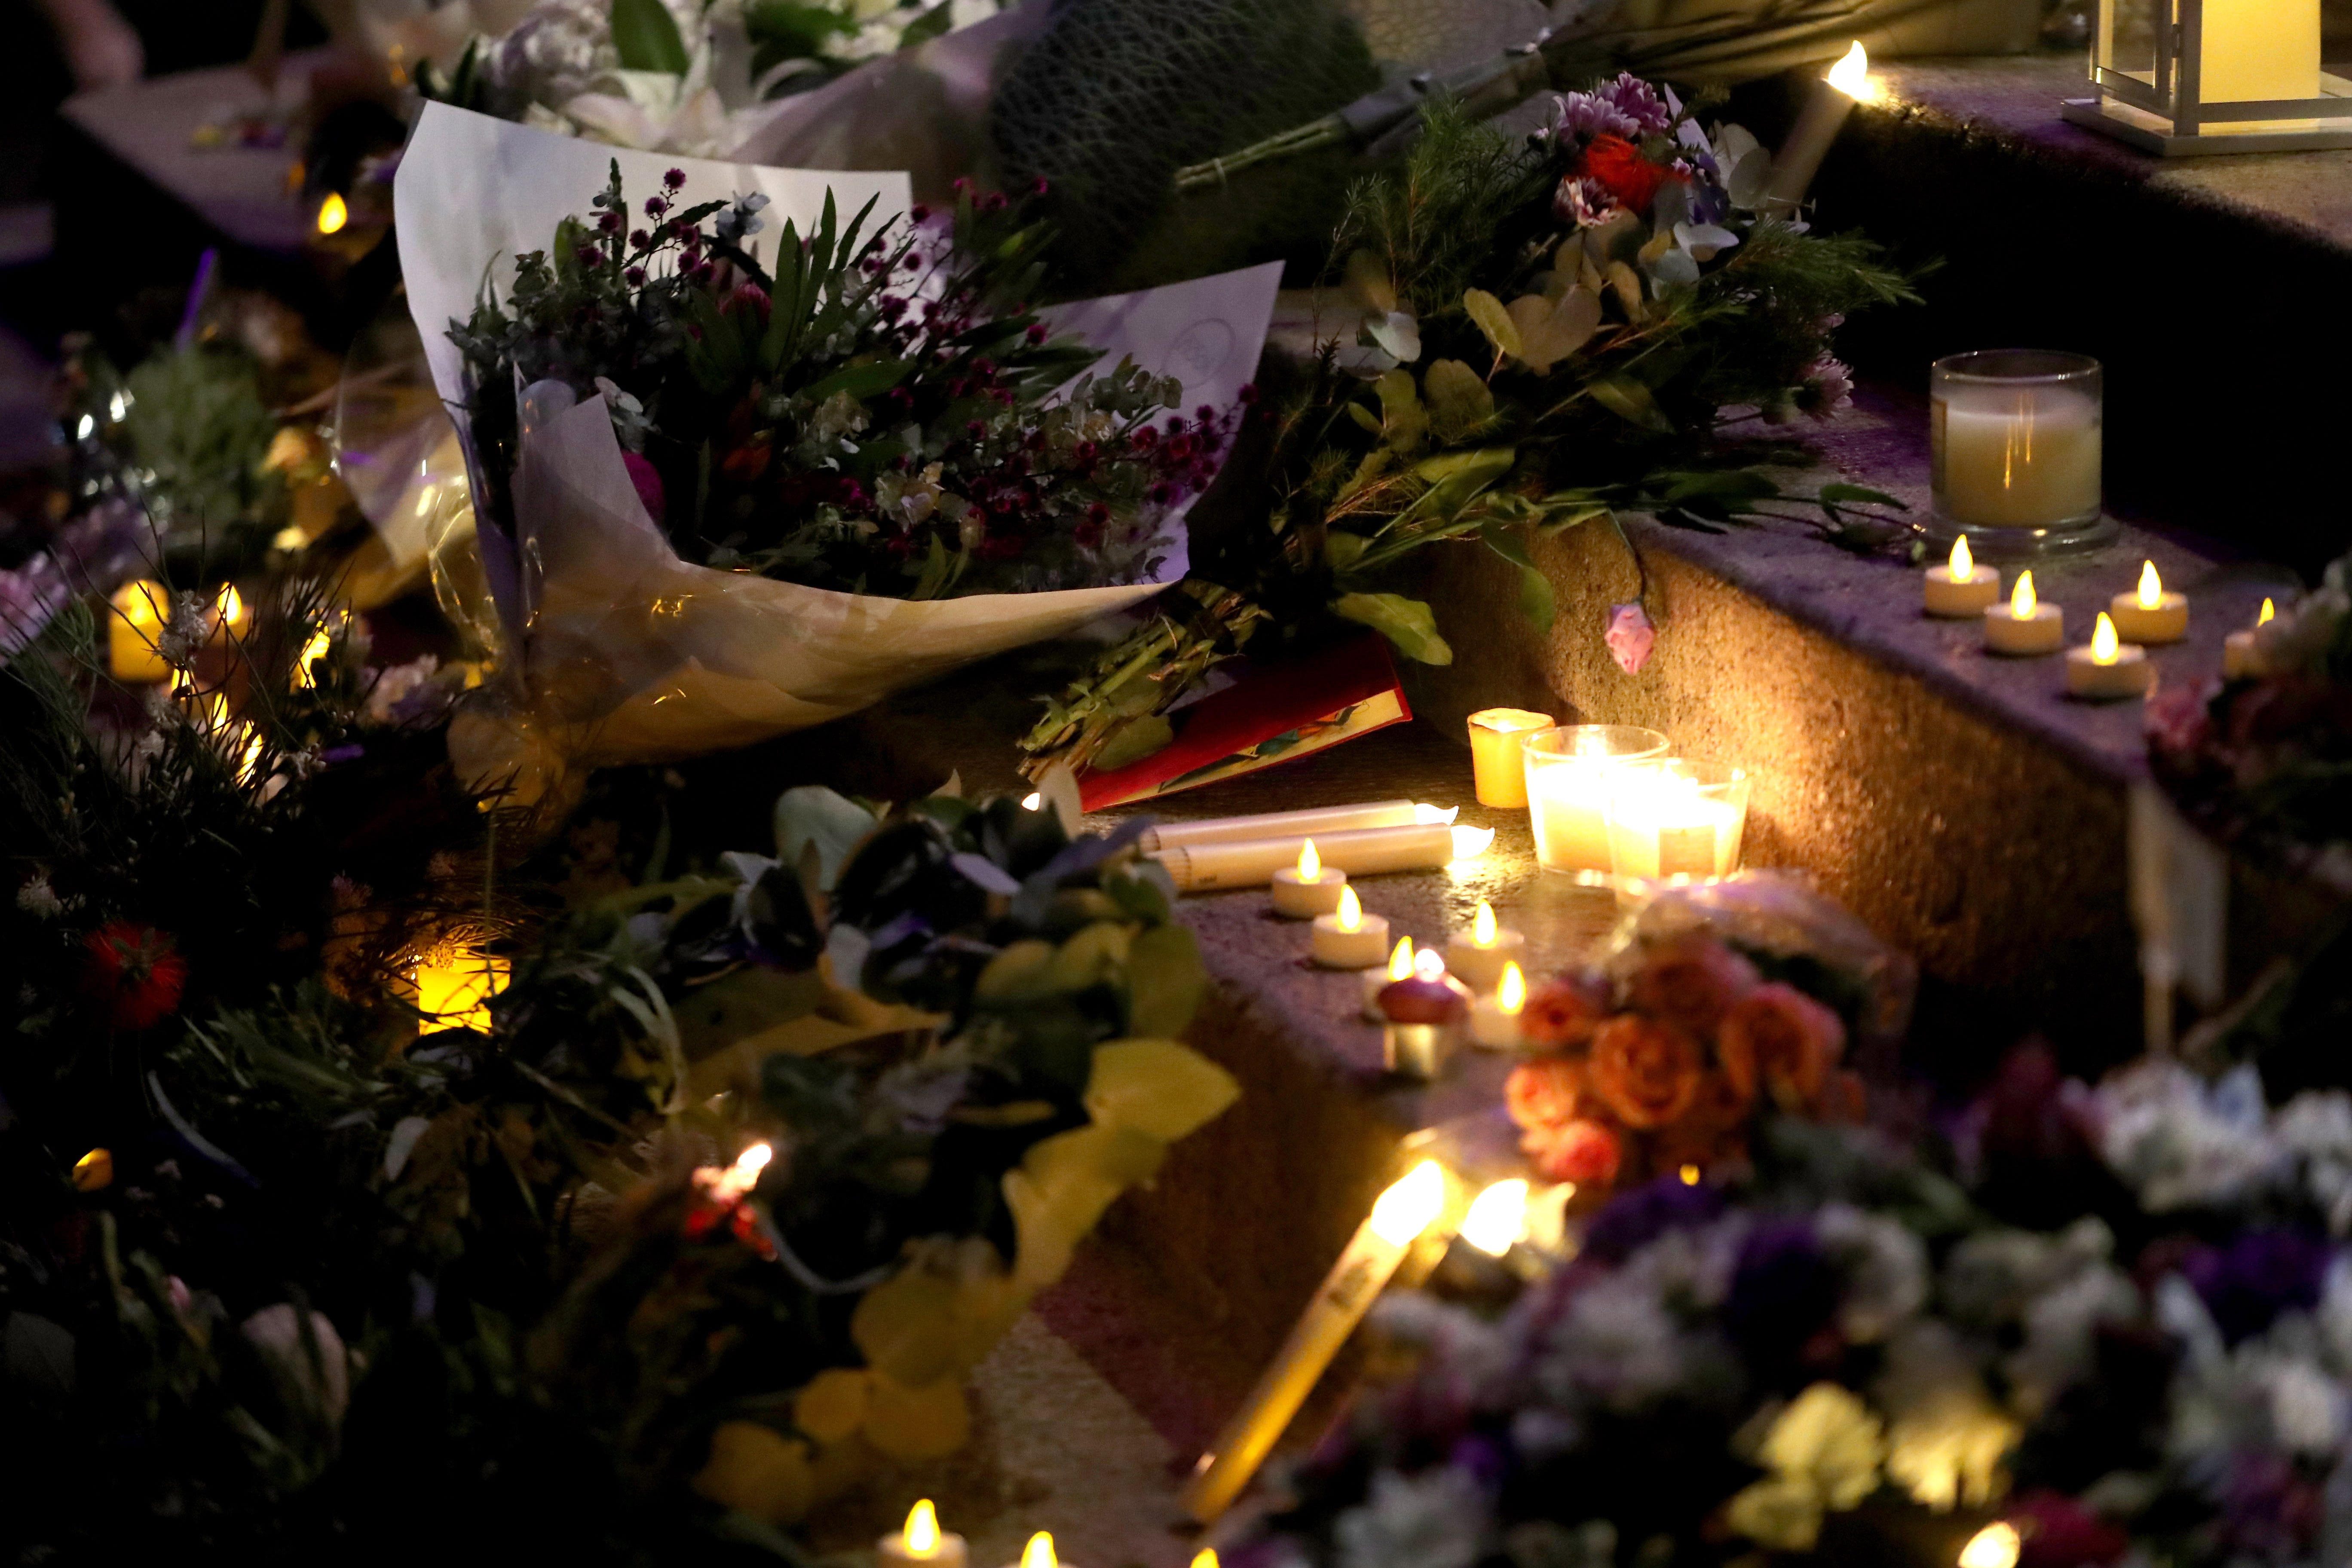 Flowers and candles are seen during a vigil to remember the victims of last week's terrorist attack on Christchurch's Al Noor Mosque and Linwood Islamic Centre in Adelaide, South Australia, Australia on March 21, 2019. A gunman killed 50 worshippers at the Al Noor Masjid and Linwood Masjid in Christchurch, New Zealand on March 15. A 28-year-old Australian suspect was charged with murder.